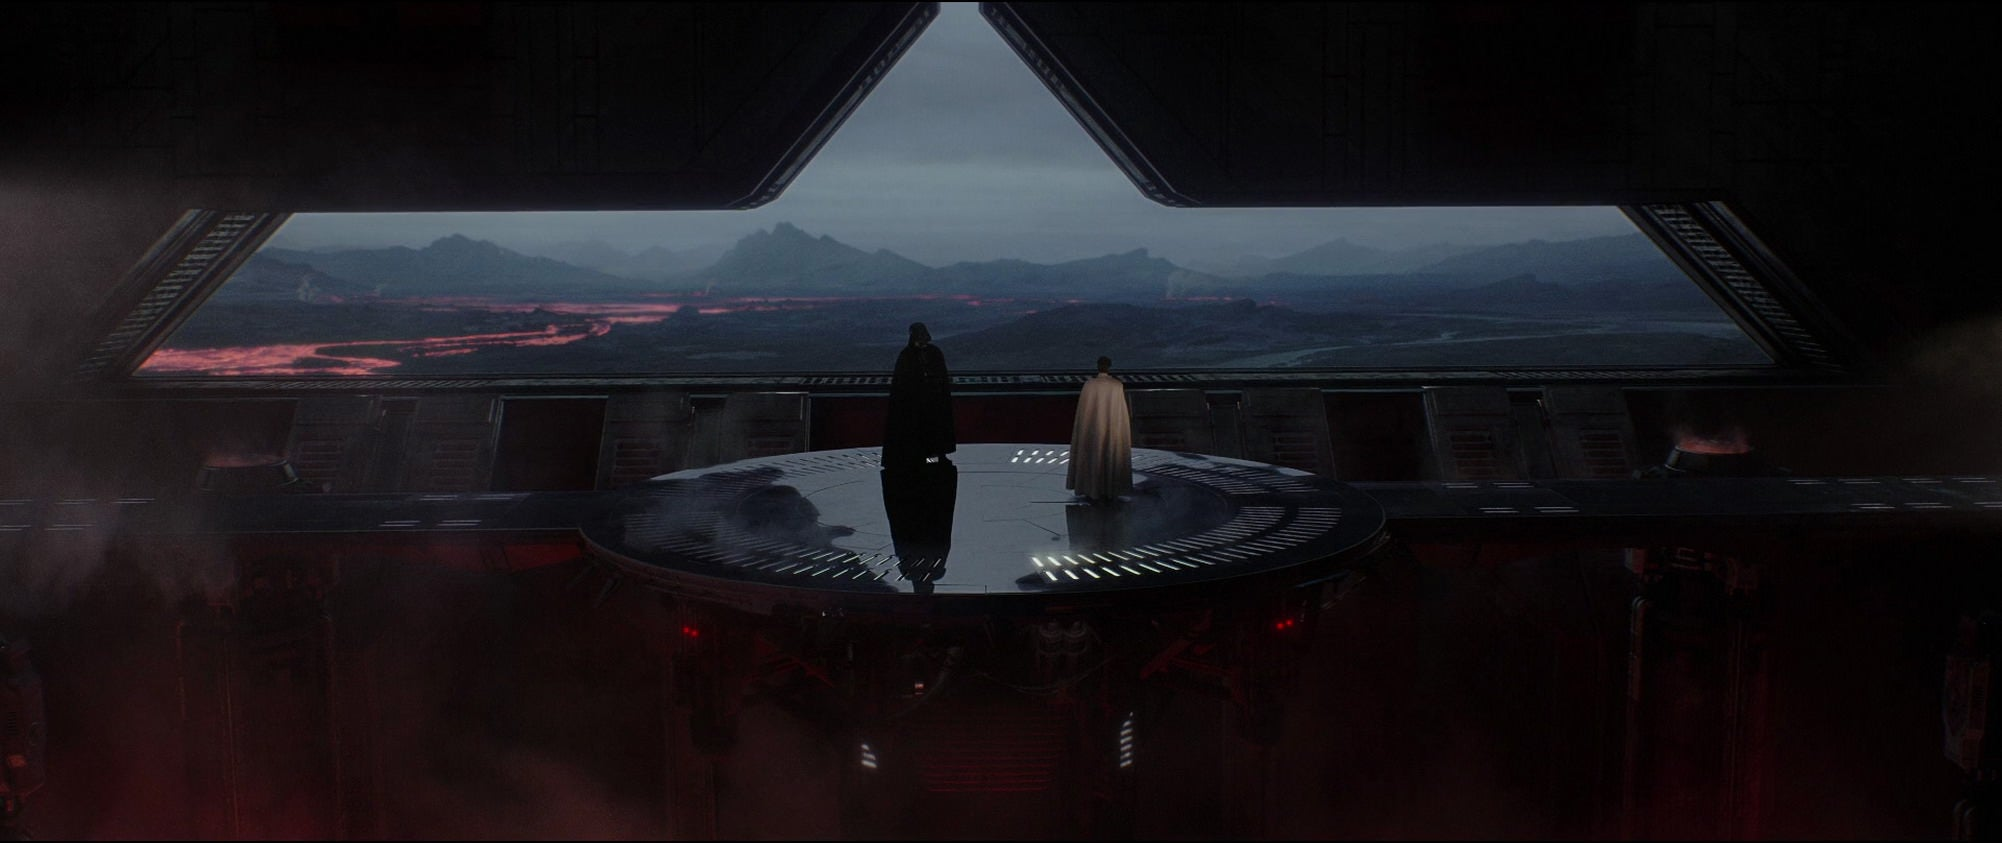 The Weird History Behind Darth Vader's Castle